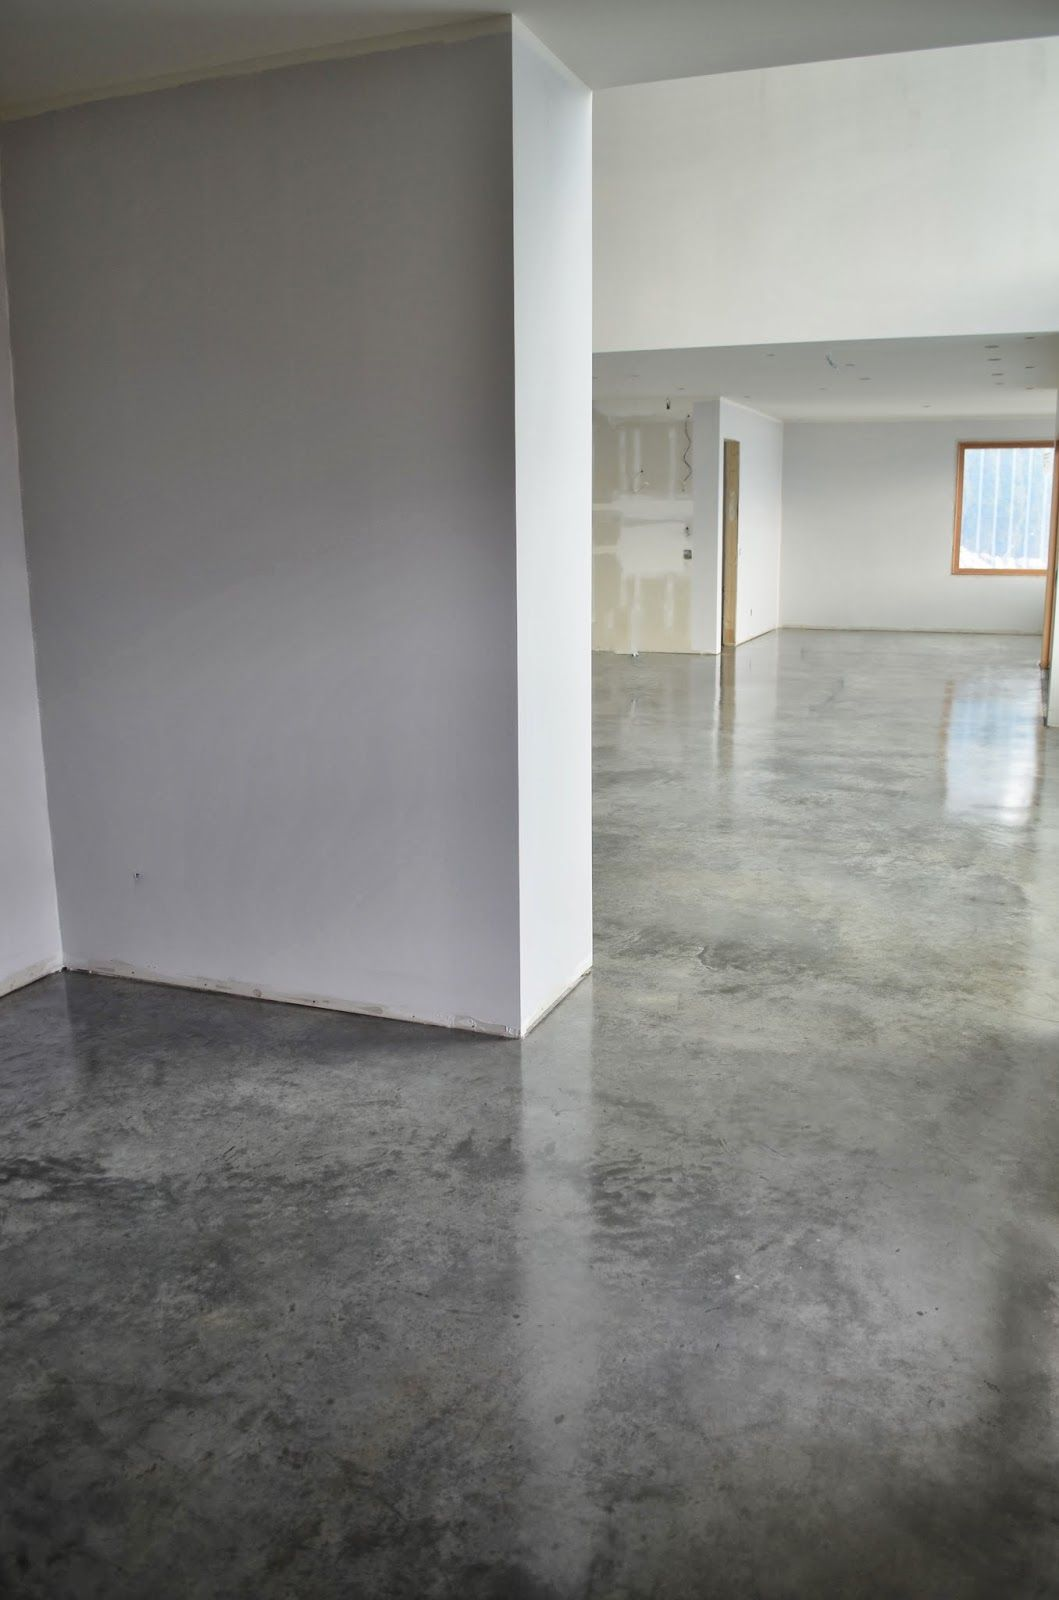 What is the purpose of hiring flooring contractors